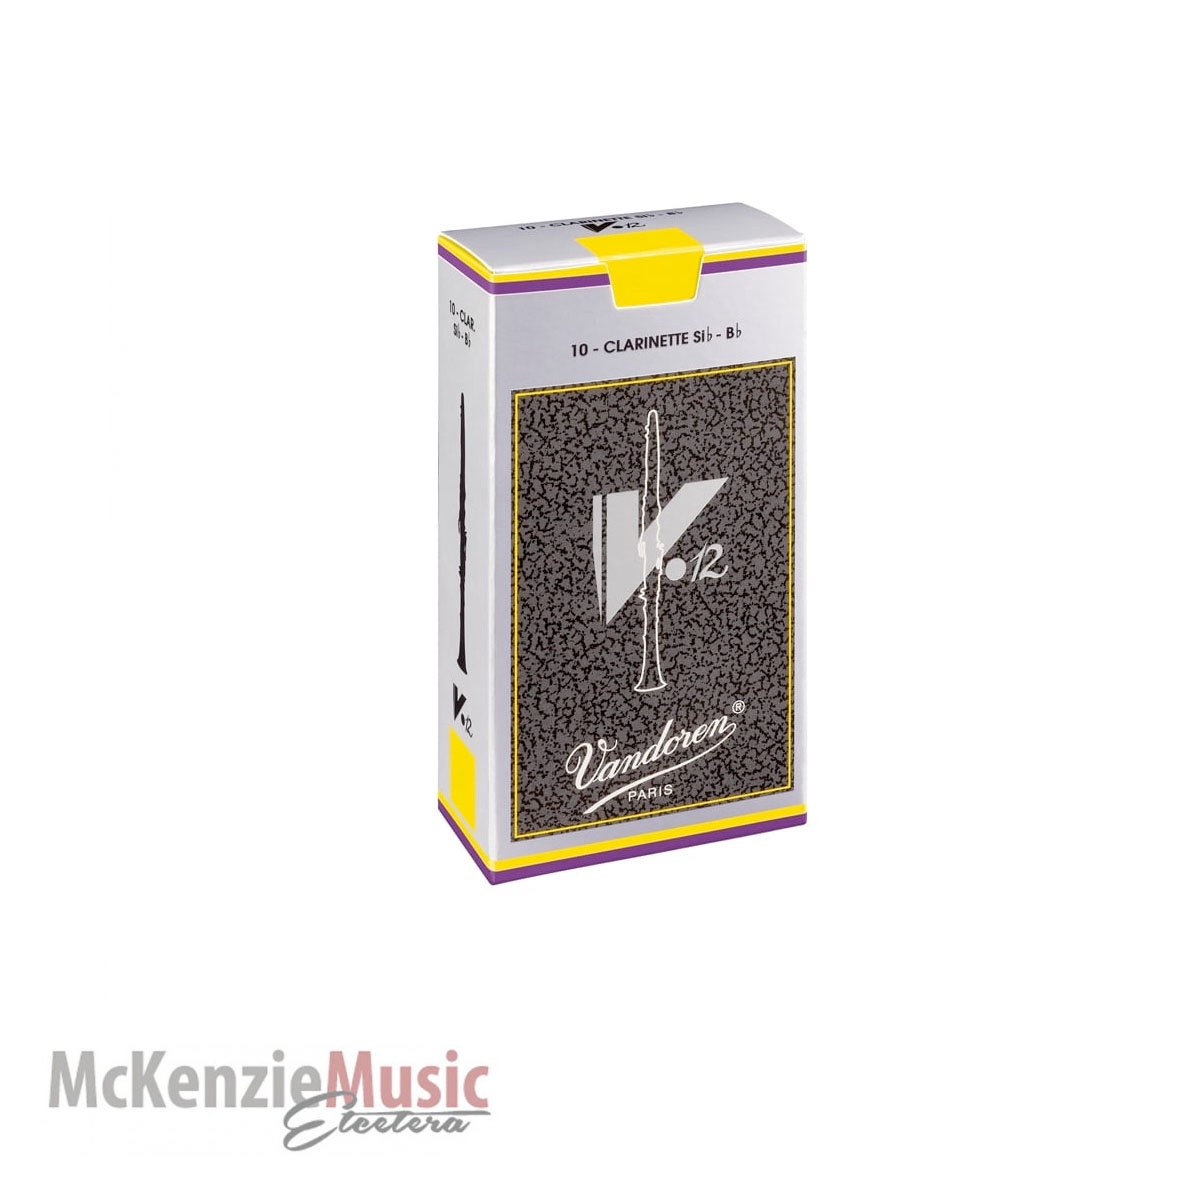 Vandoren V12 Clarinet Reed Box